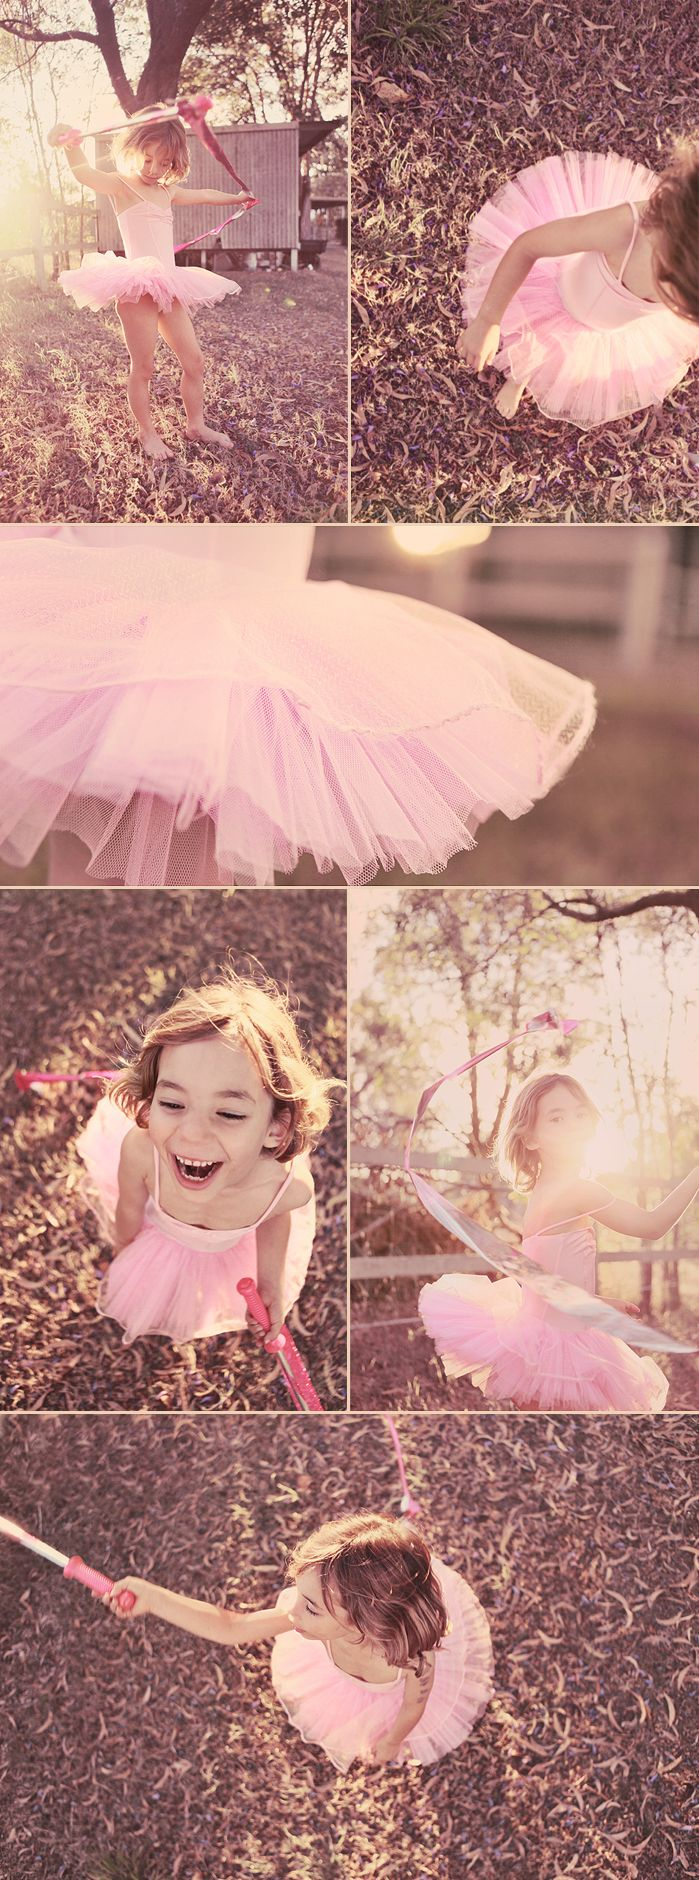 Hoping my future little girl will follow in my ballerina footsteps!